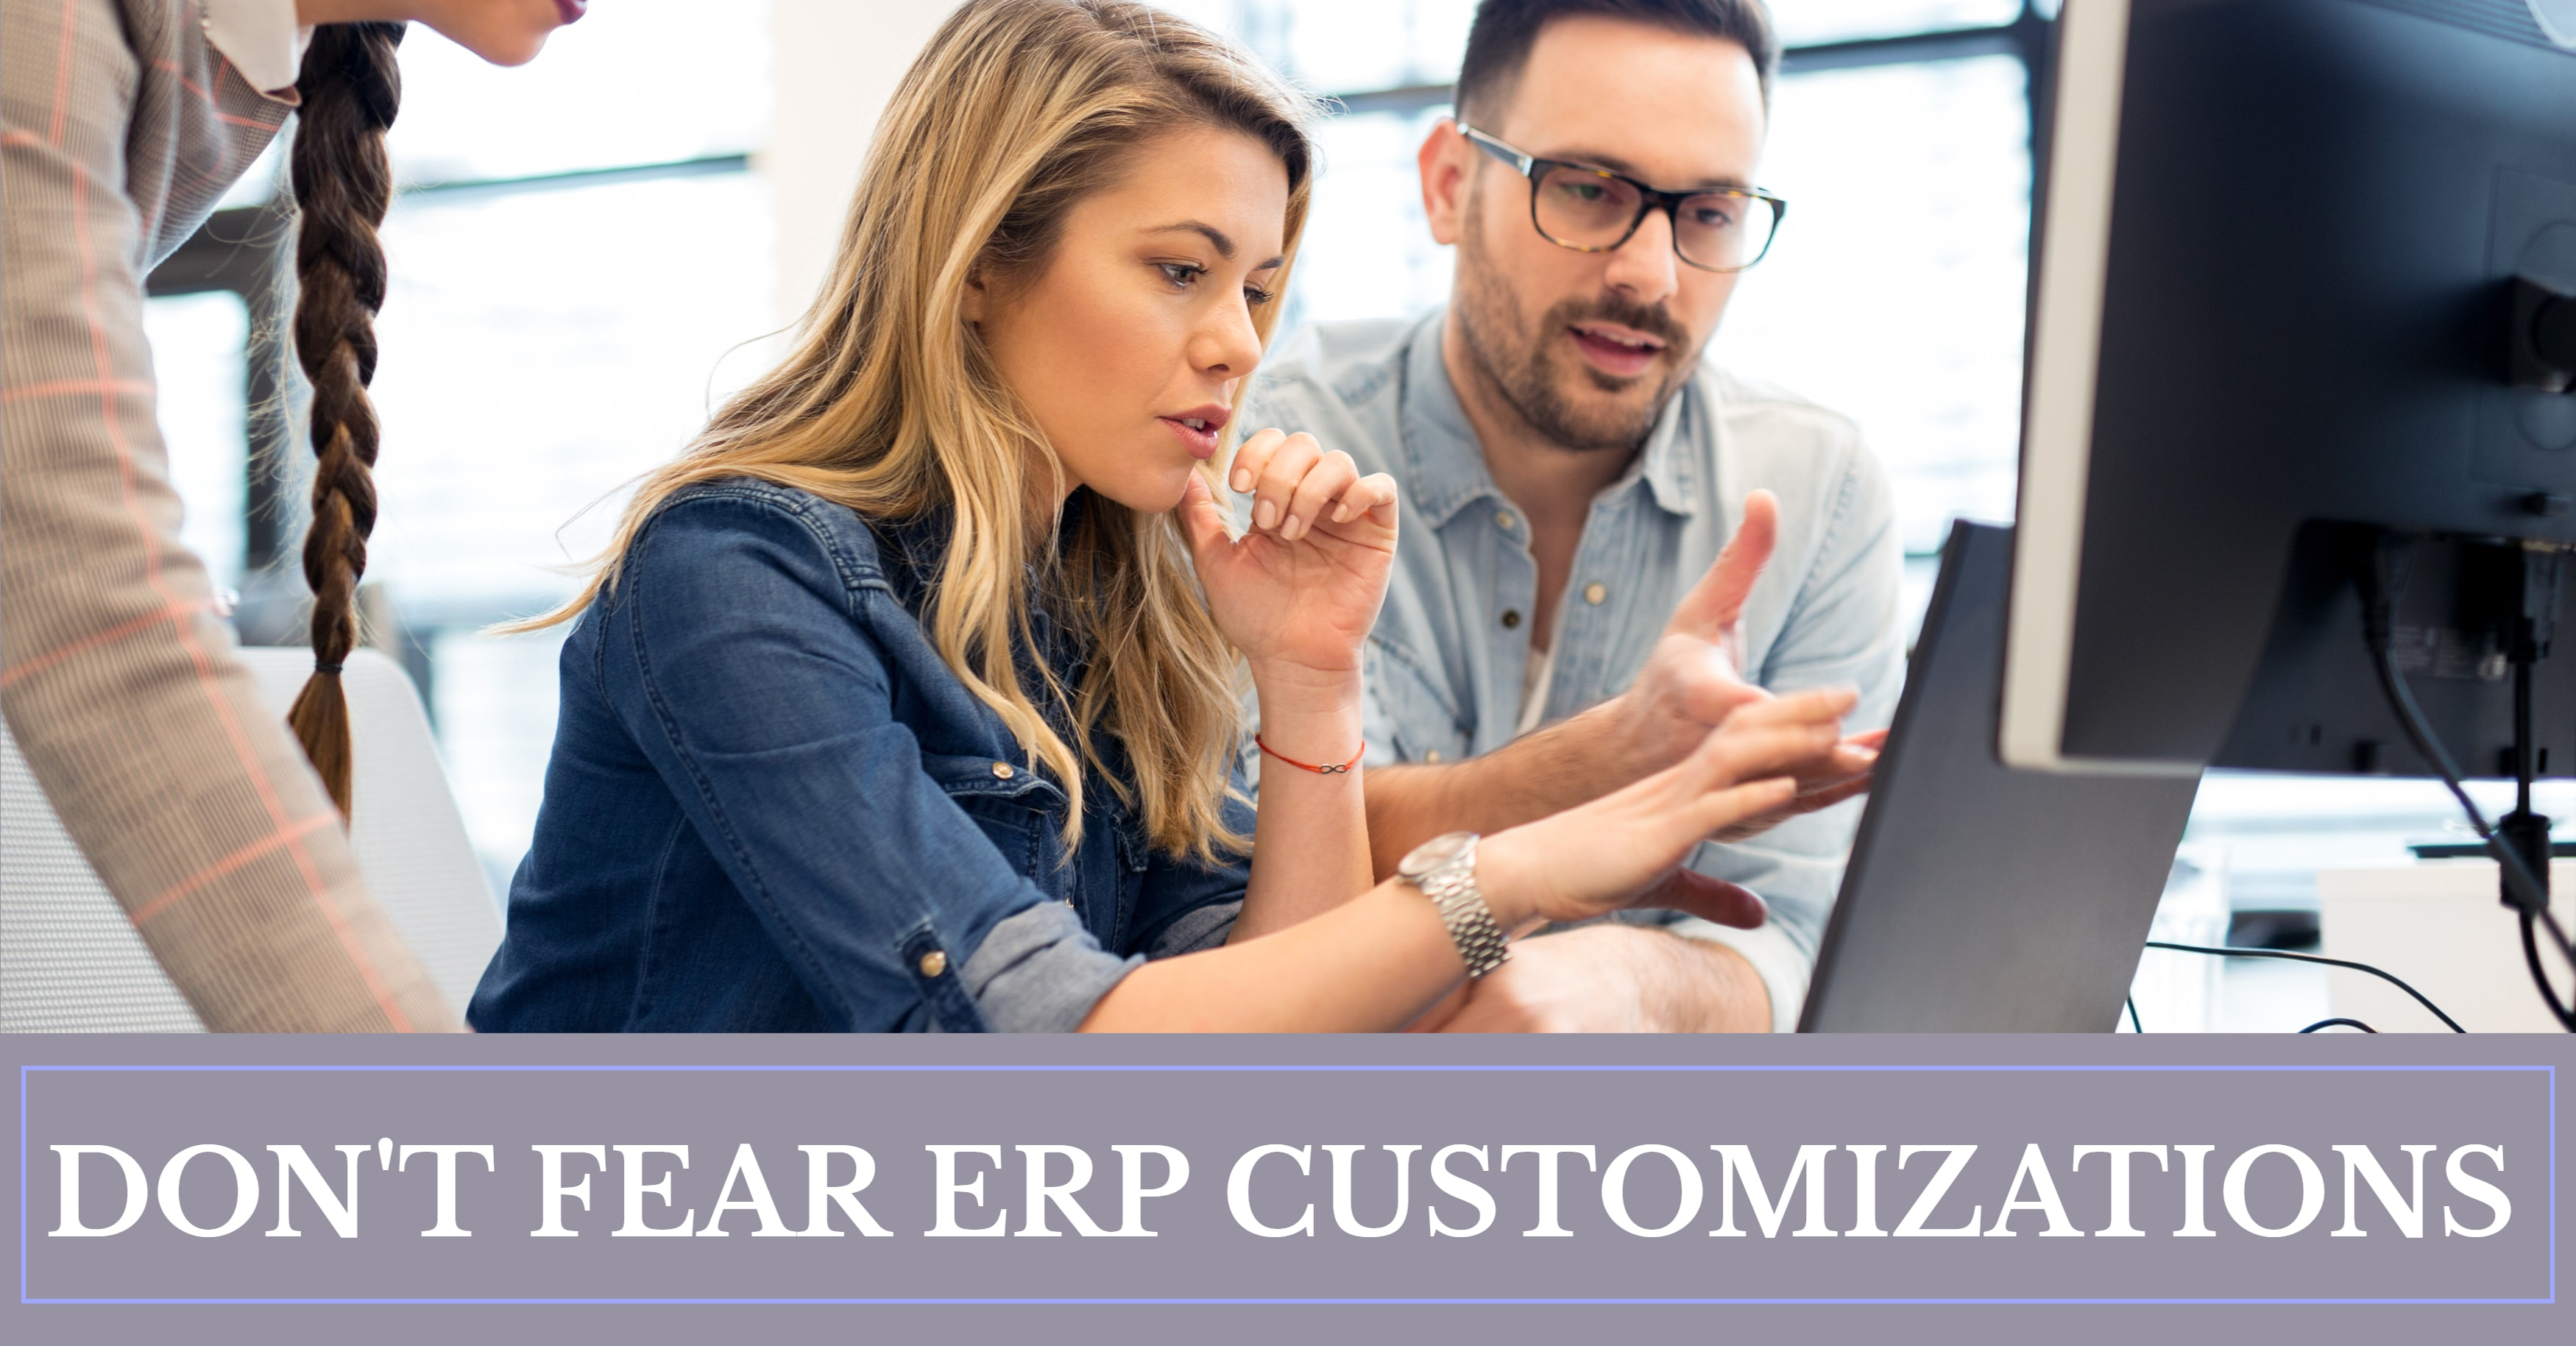 Why You Shouldn't Fear ERP Customizations